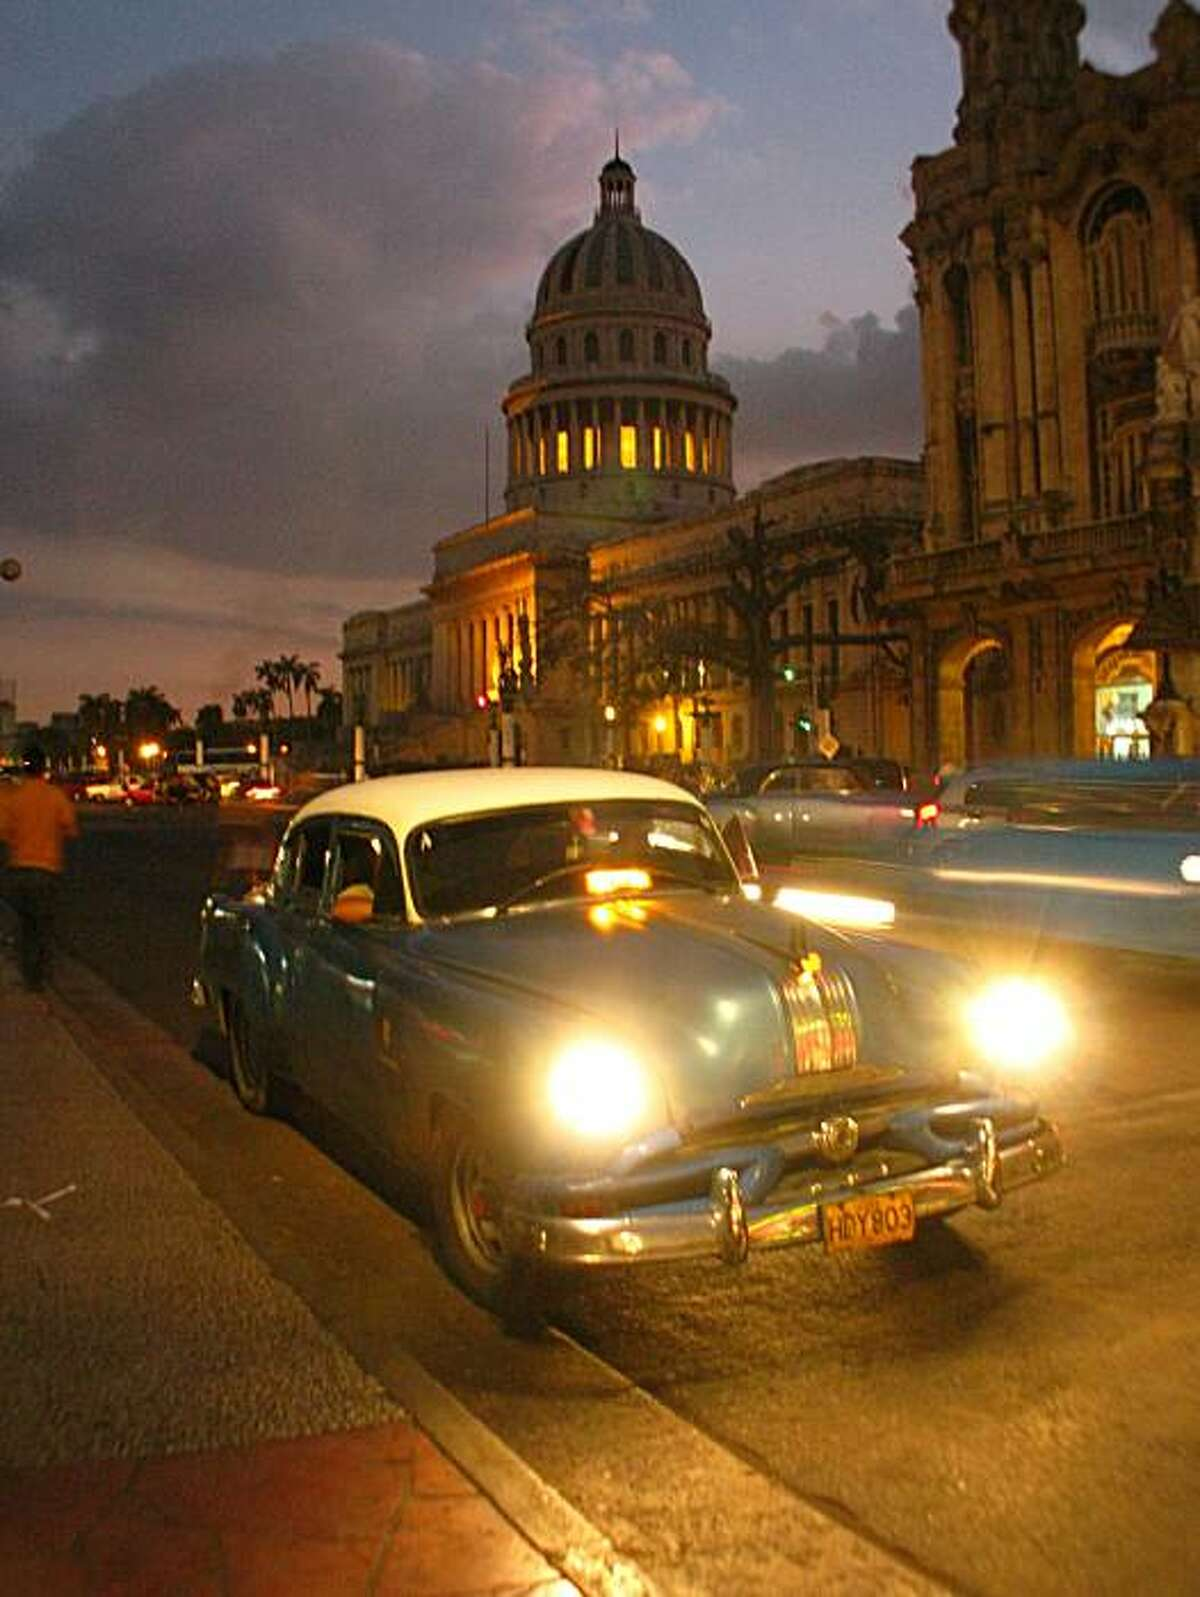 A classic 1950s American car parks for a moment with the Capitolio (the former national capitol building) rising in the background in Havana, Cuba.